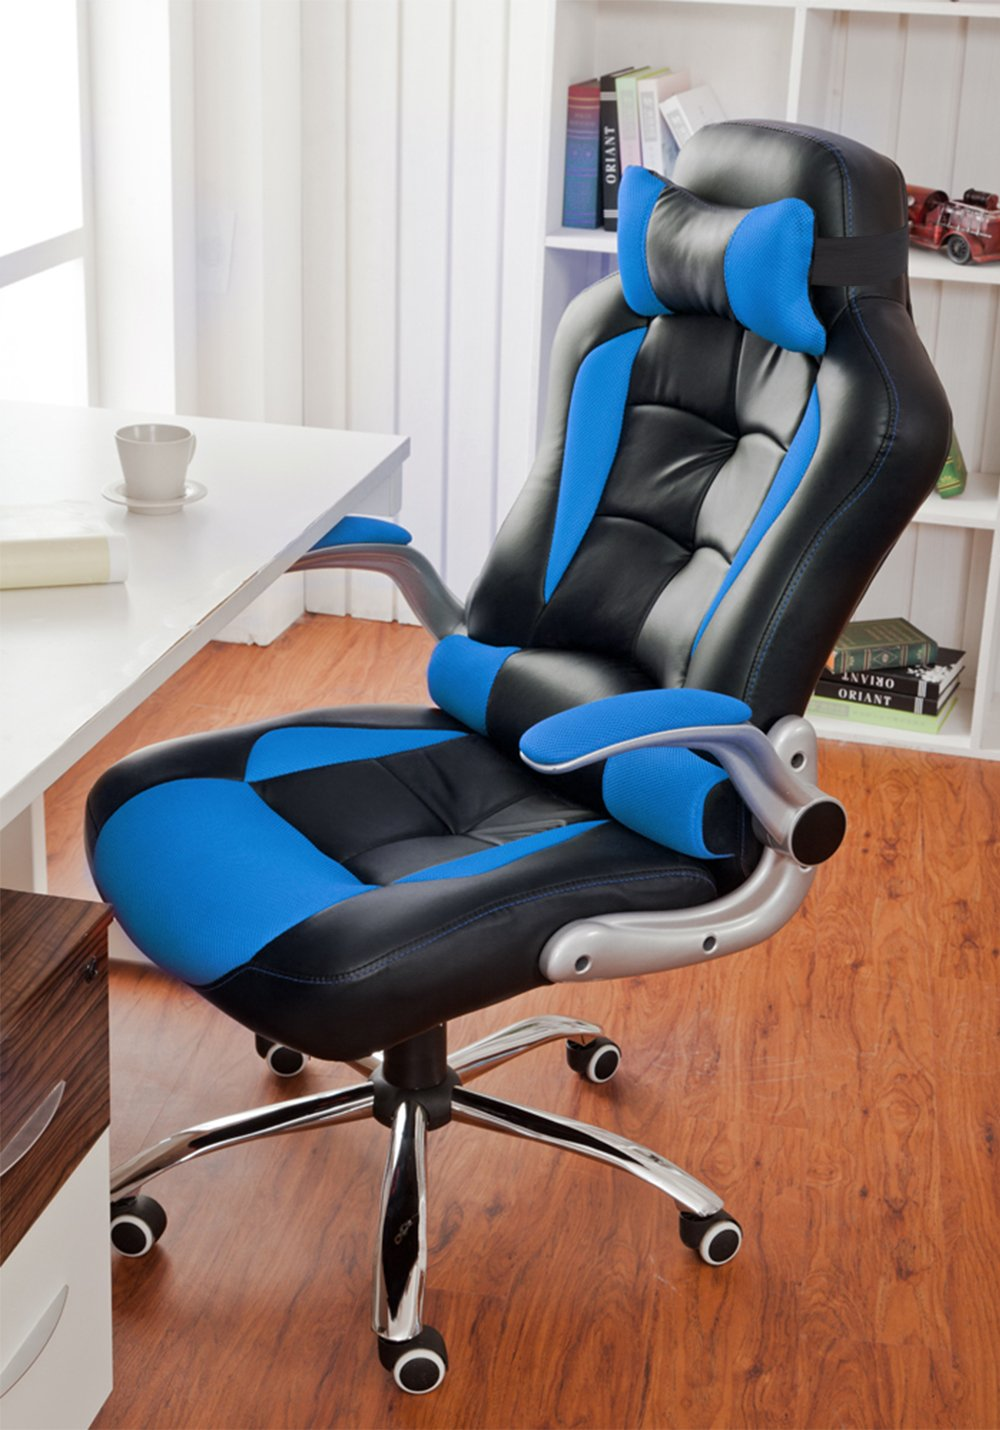 luxury office chairs leather. btm luxury desk chair swivel pc office tilt function padded adjustable height ergonomic pu leather amazoncouk kitchen u0026 home chairs